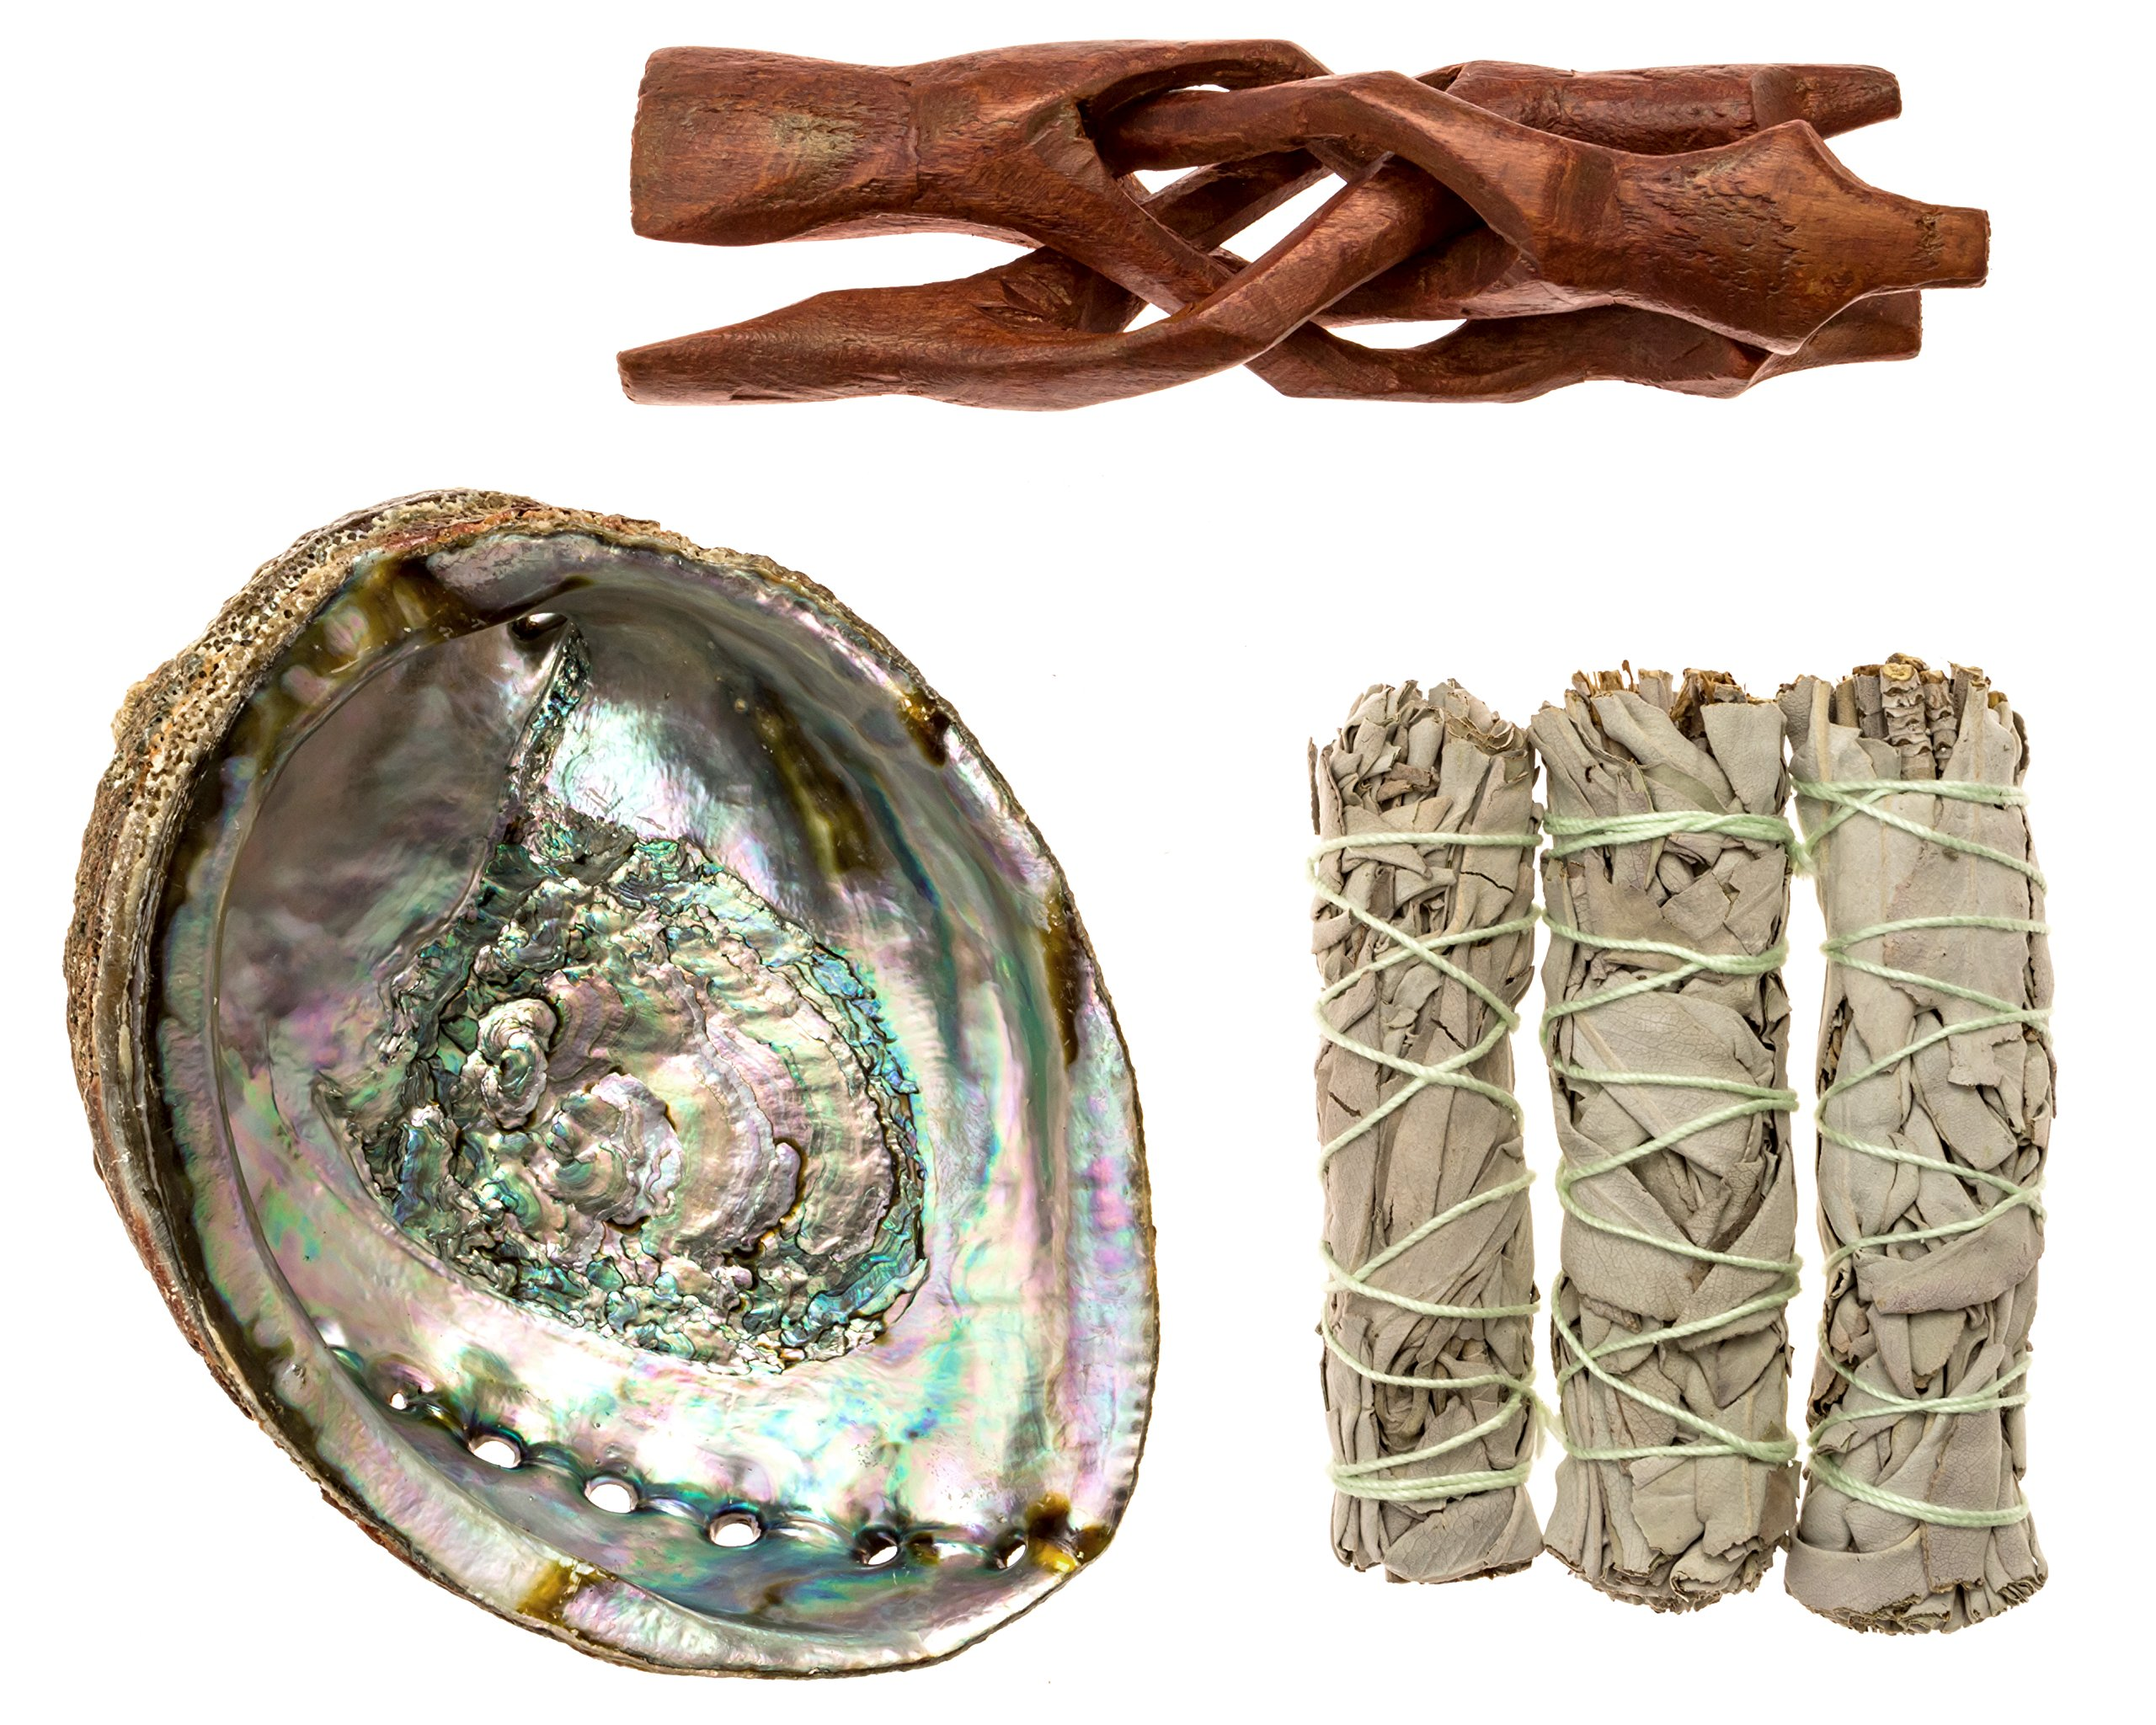 5-6'' Premium Abalone Shell with Wooden Tripod Stand and 3 California White Sage Smudge Sticks for Incense Burning, Home Fragrance, Energy Clearing, Yoga, Meditation.